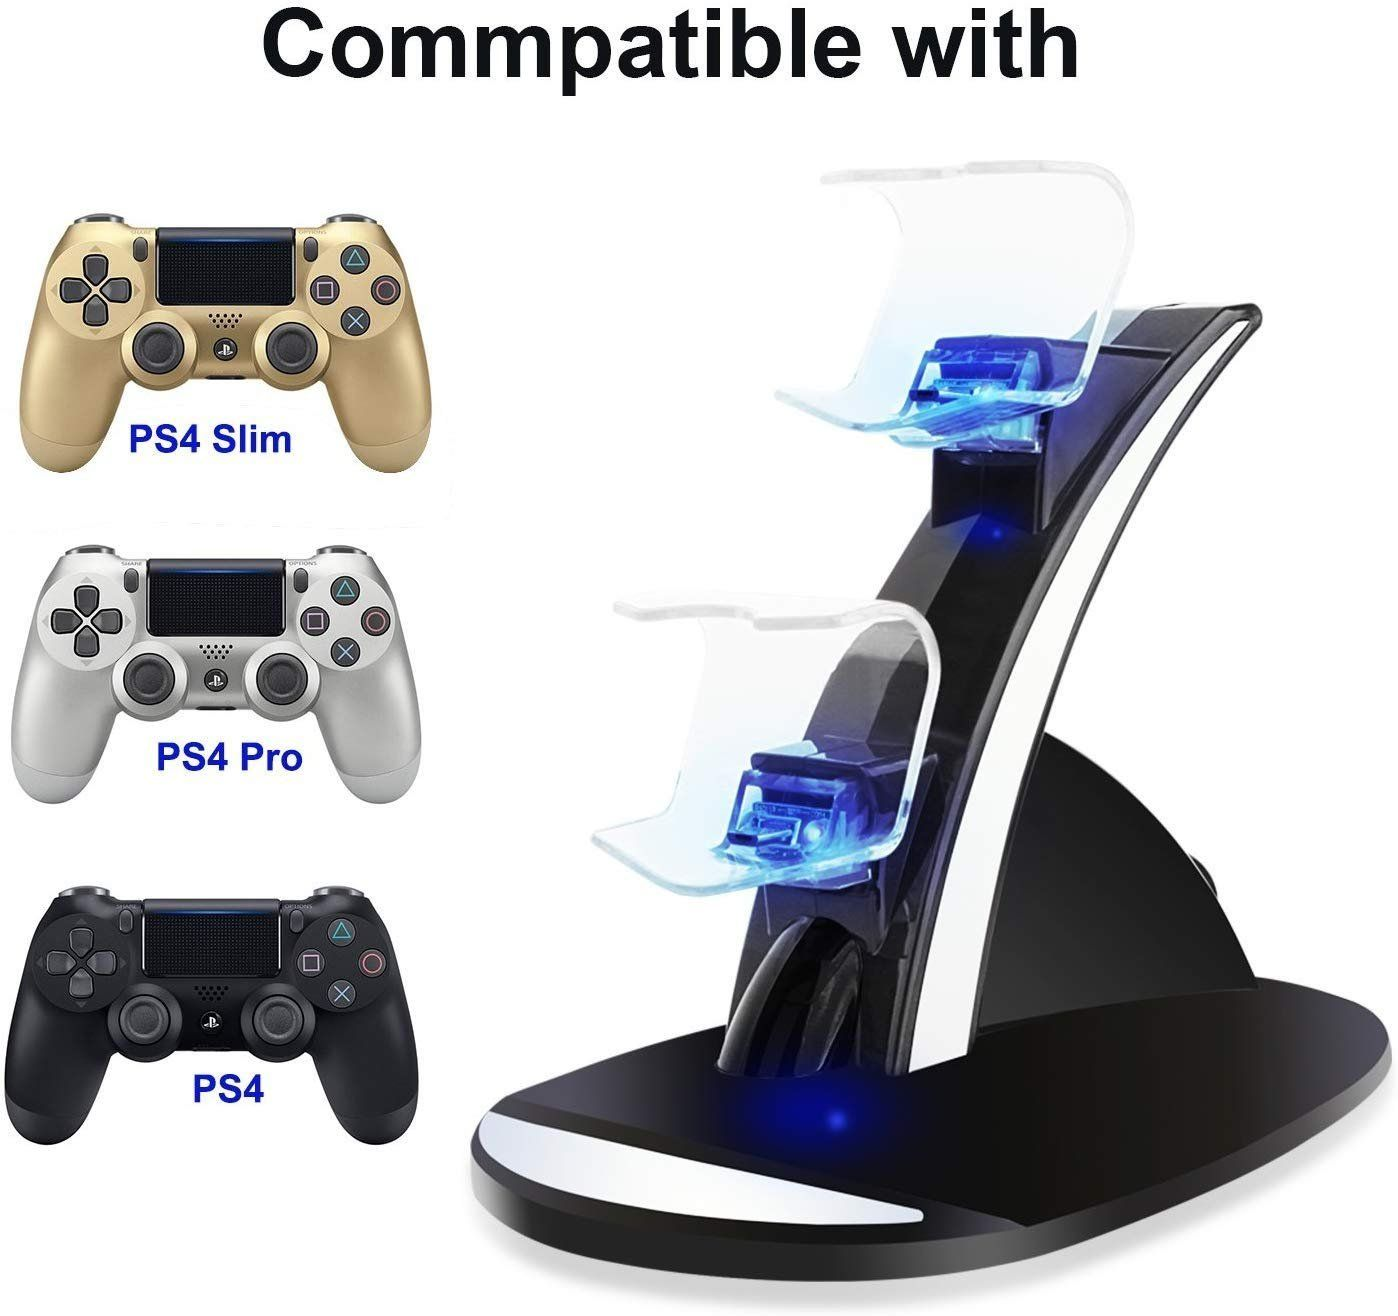 Ps4 Controller Charger Y Team Playstation 4 Ps4 Ps4 Pro Ps4 Slim Controller Charger Charging D Playstation 4 Accessories Ps4 Controller Charger Ps4 Slim